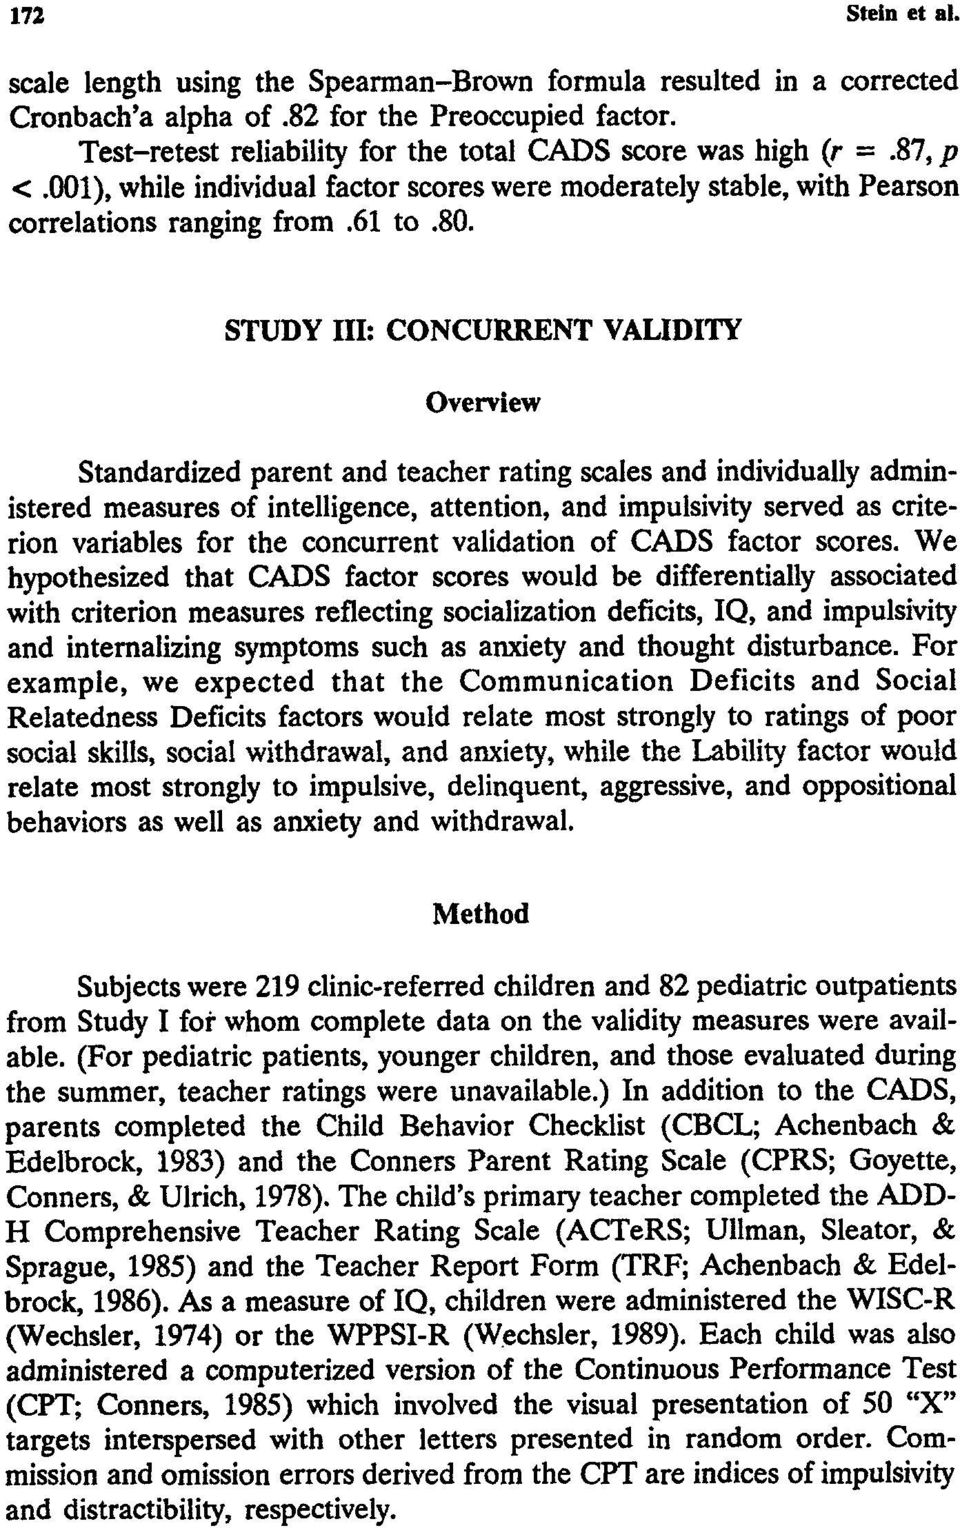 STUDY III: CONCURRENT VALIDITY Overview Standardized parent and teacher rating scales and individually administered measures of intelligence, attention, and impulsivity served as criterion variables